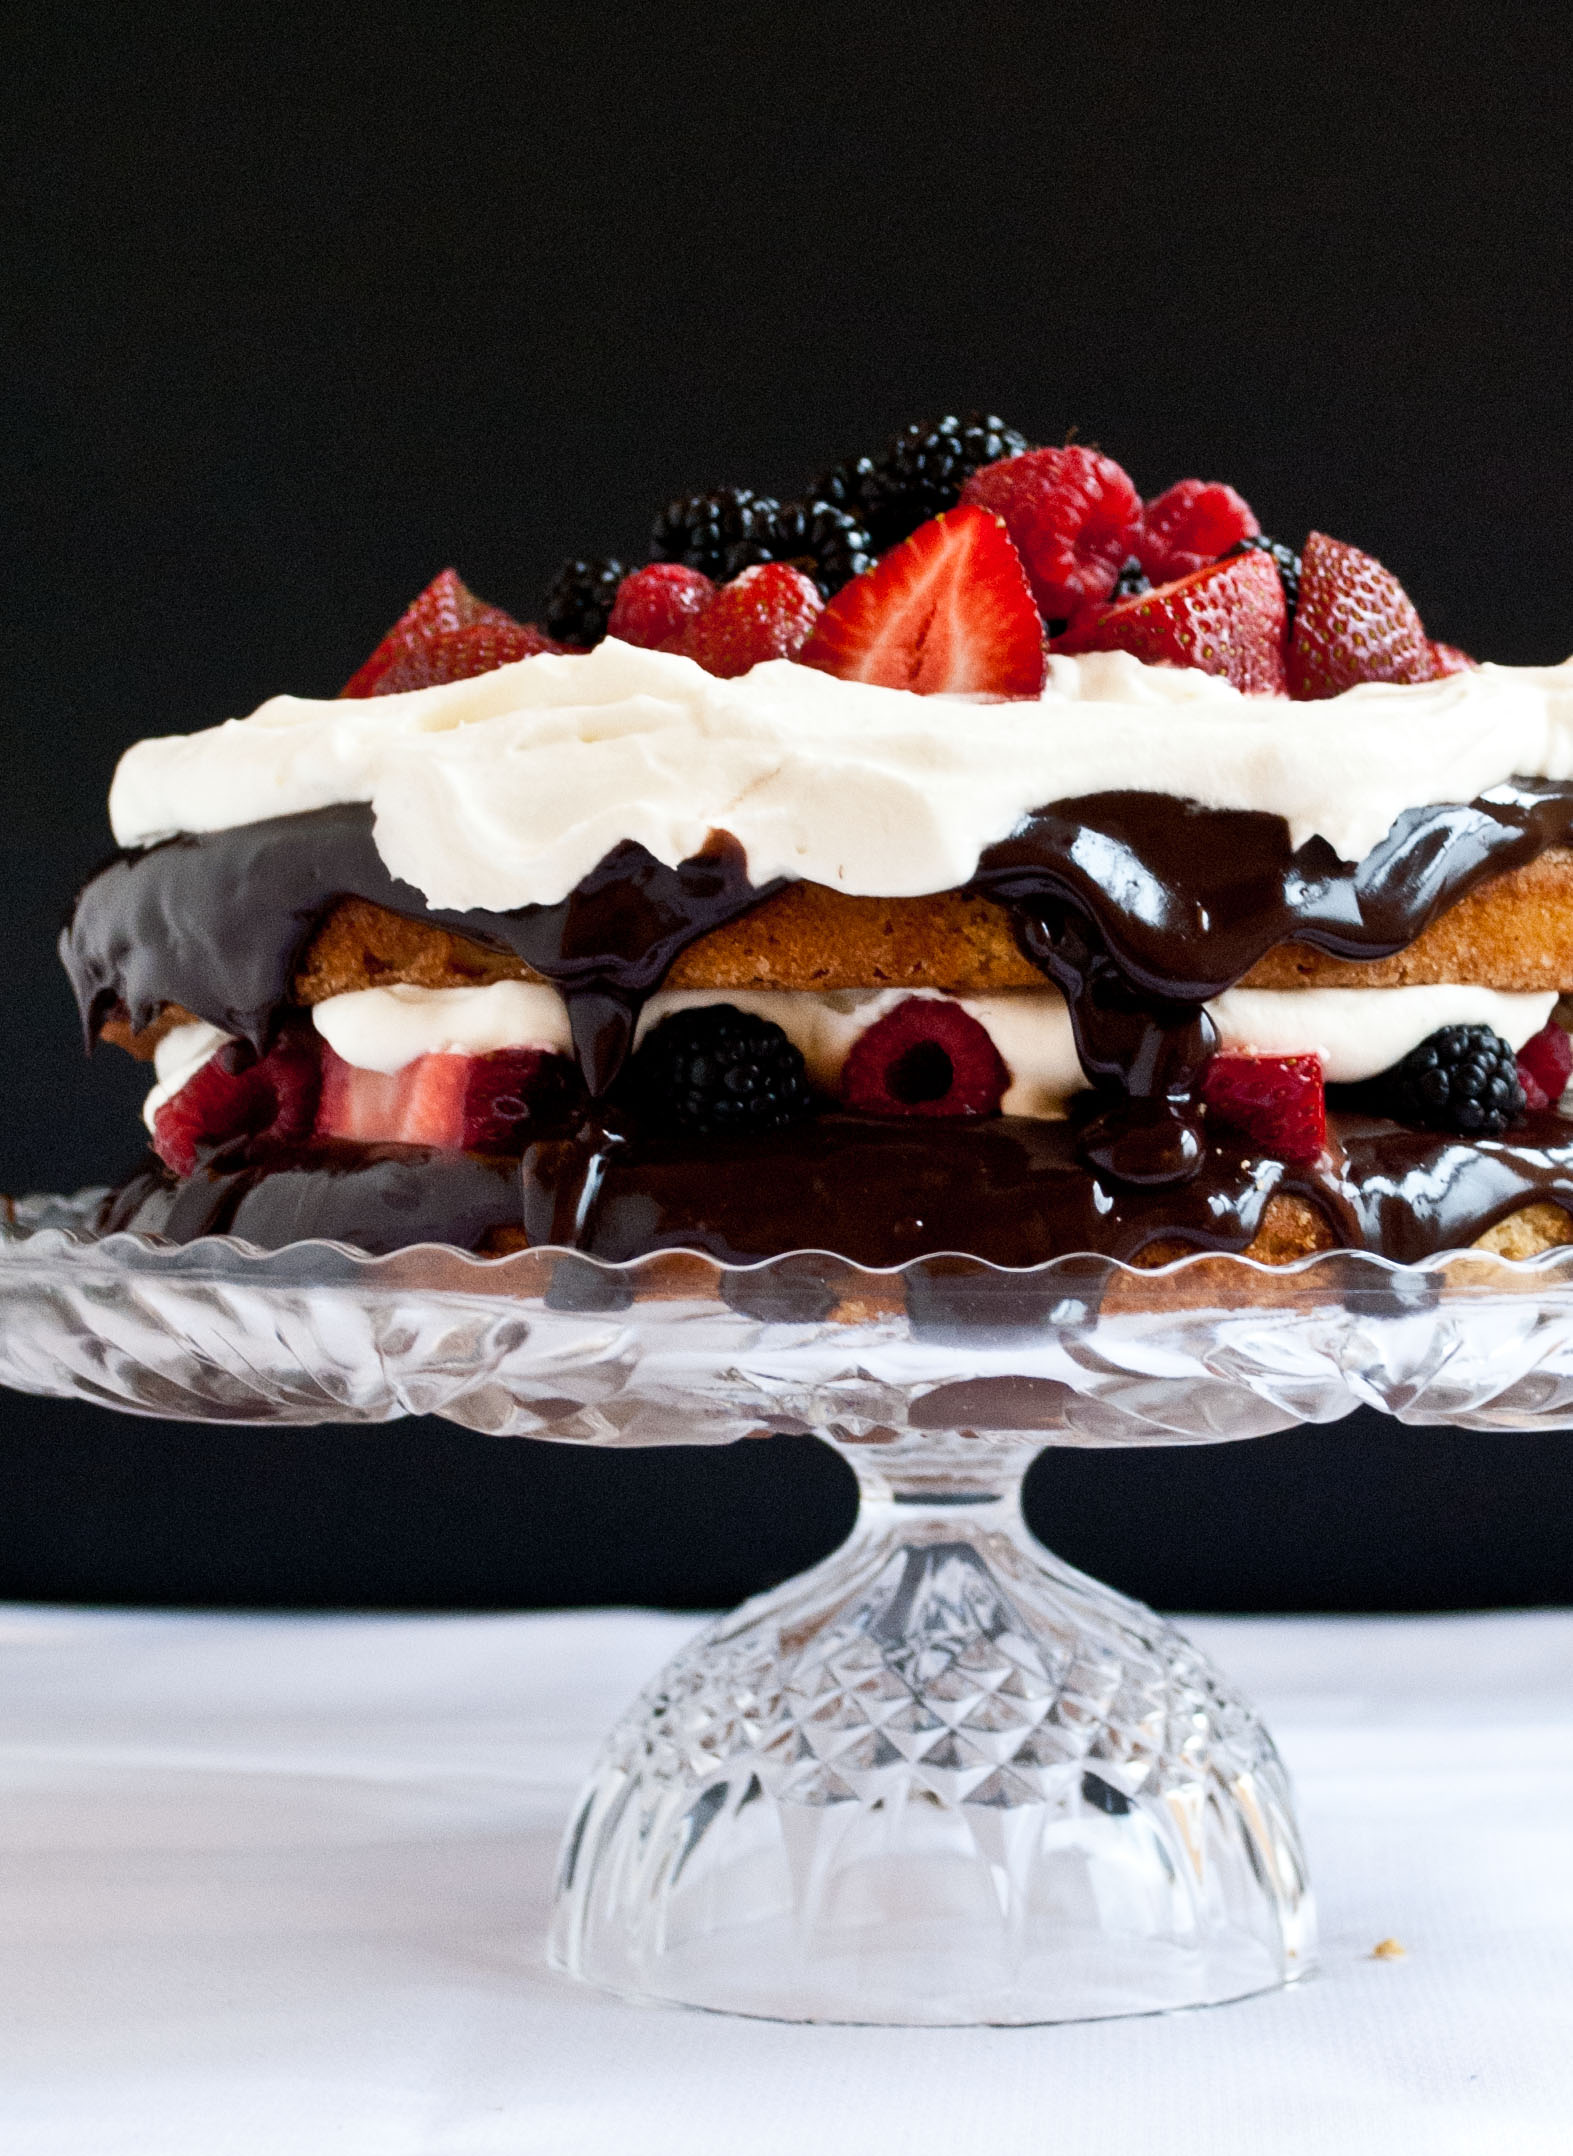 Gluten Free Coconut Cake with Fresh Berries, Ganache, and Whipped Cream | Neighborfoodblog.com